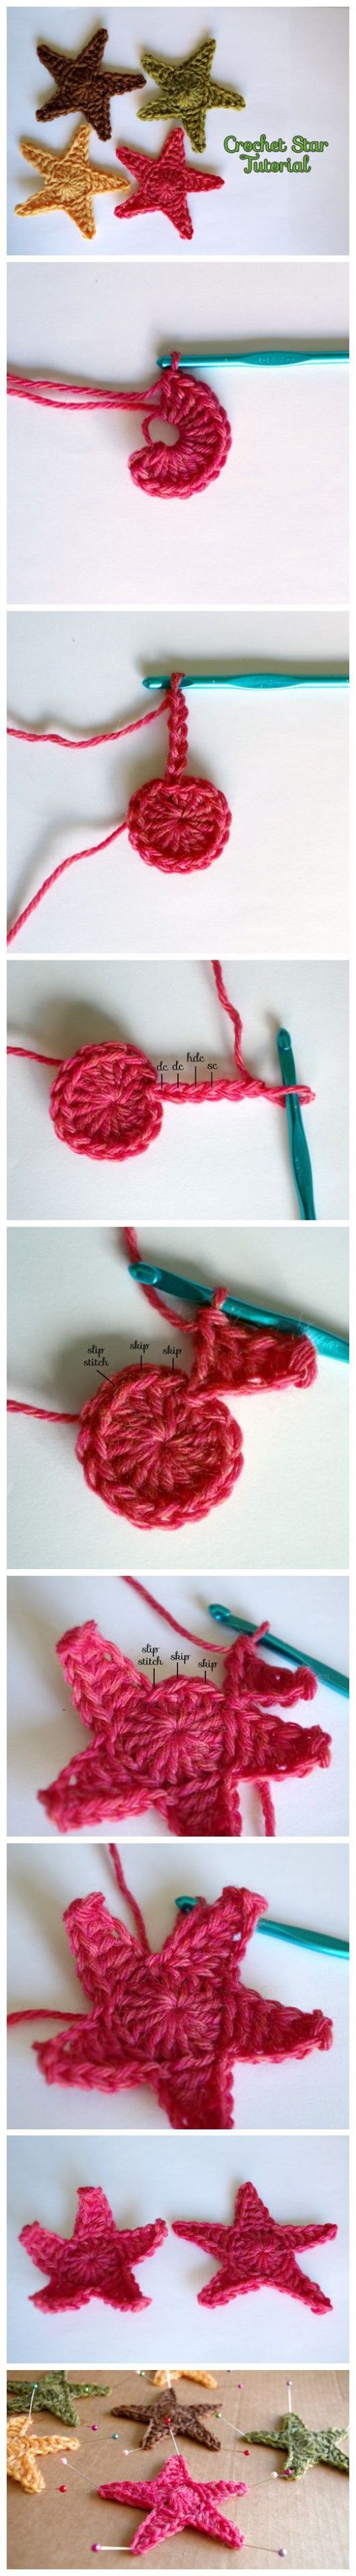 ❣ Star! Pattern here - http://habitualhomebody.com/how-to-crochet-a-star/ ❣